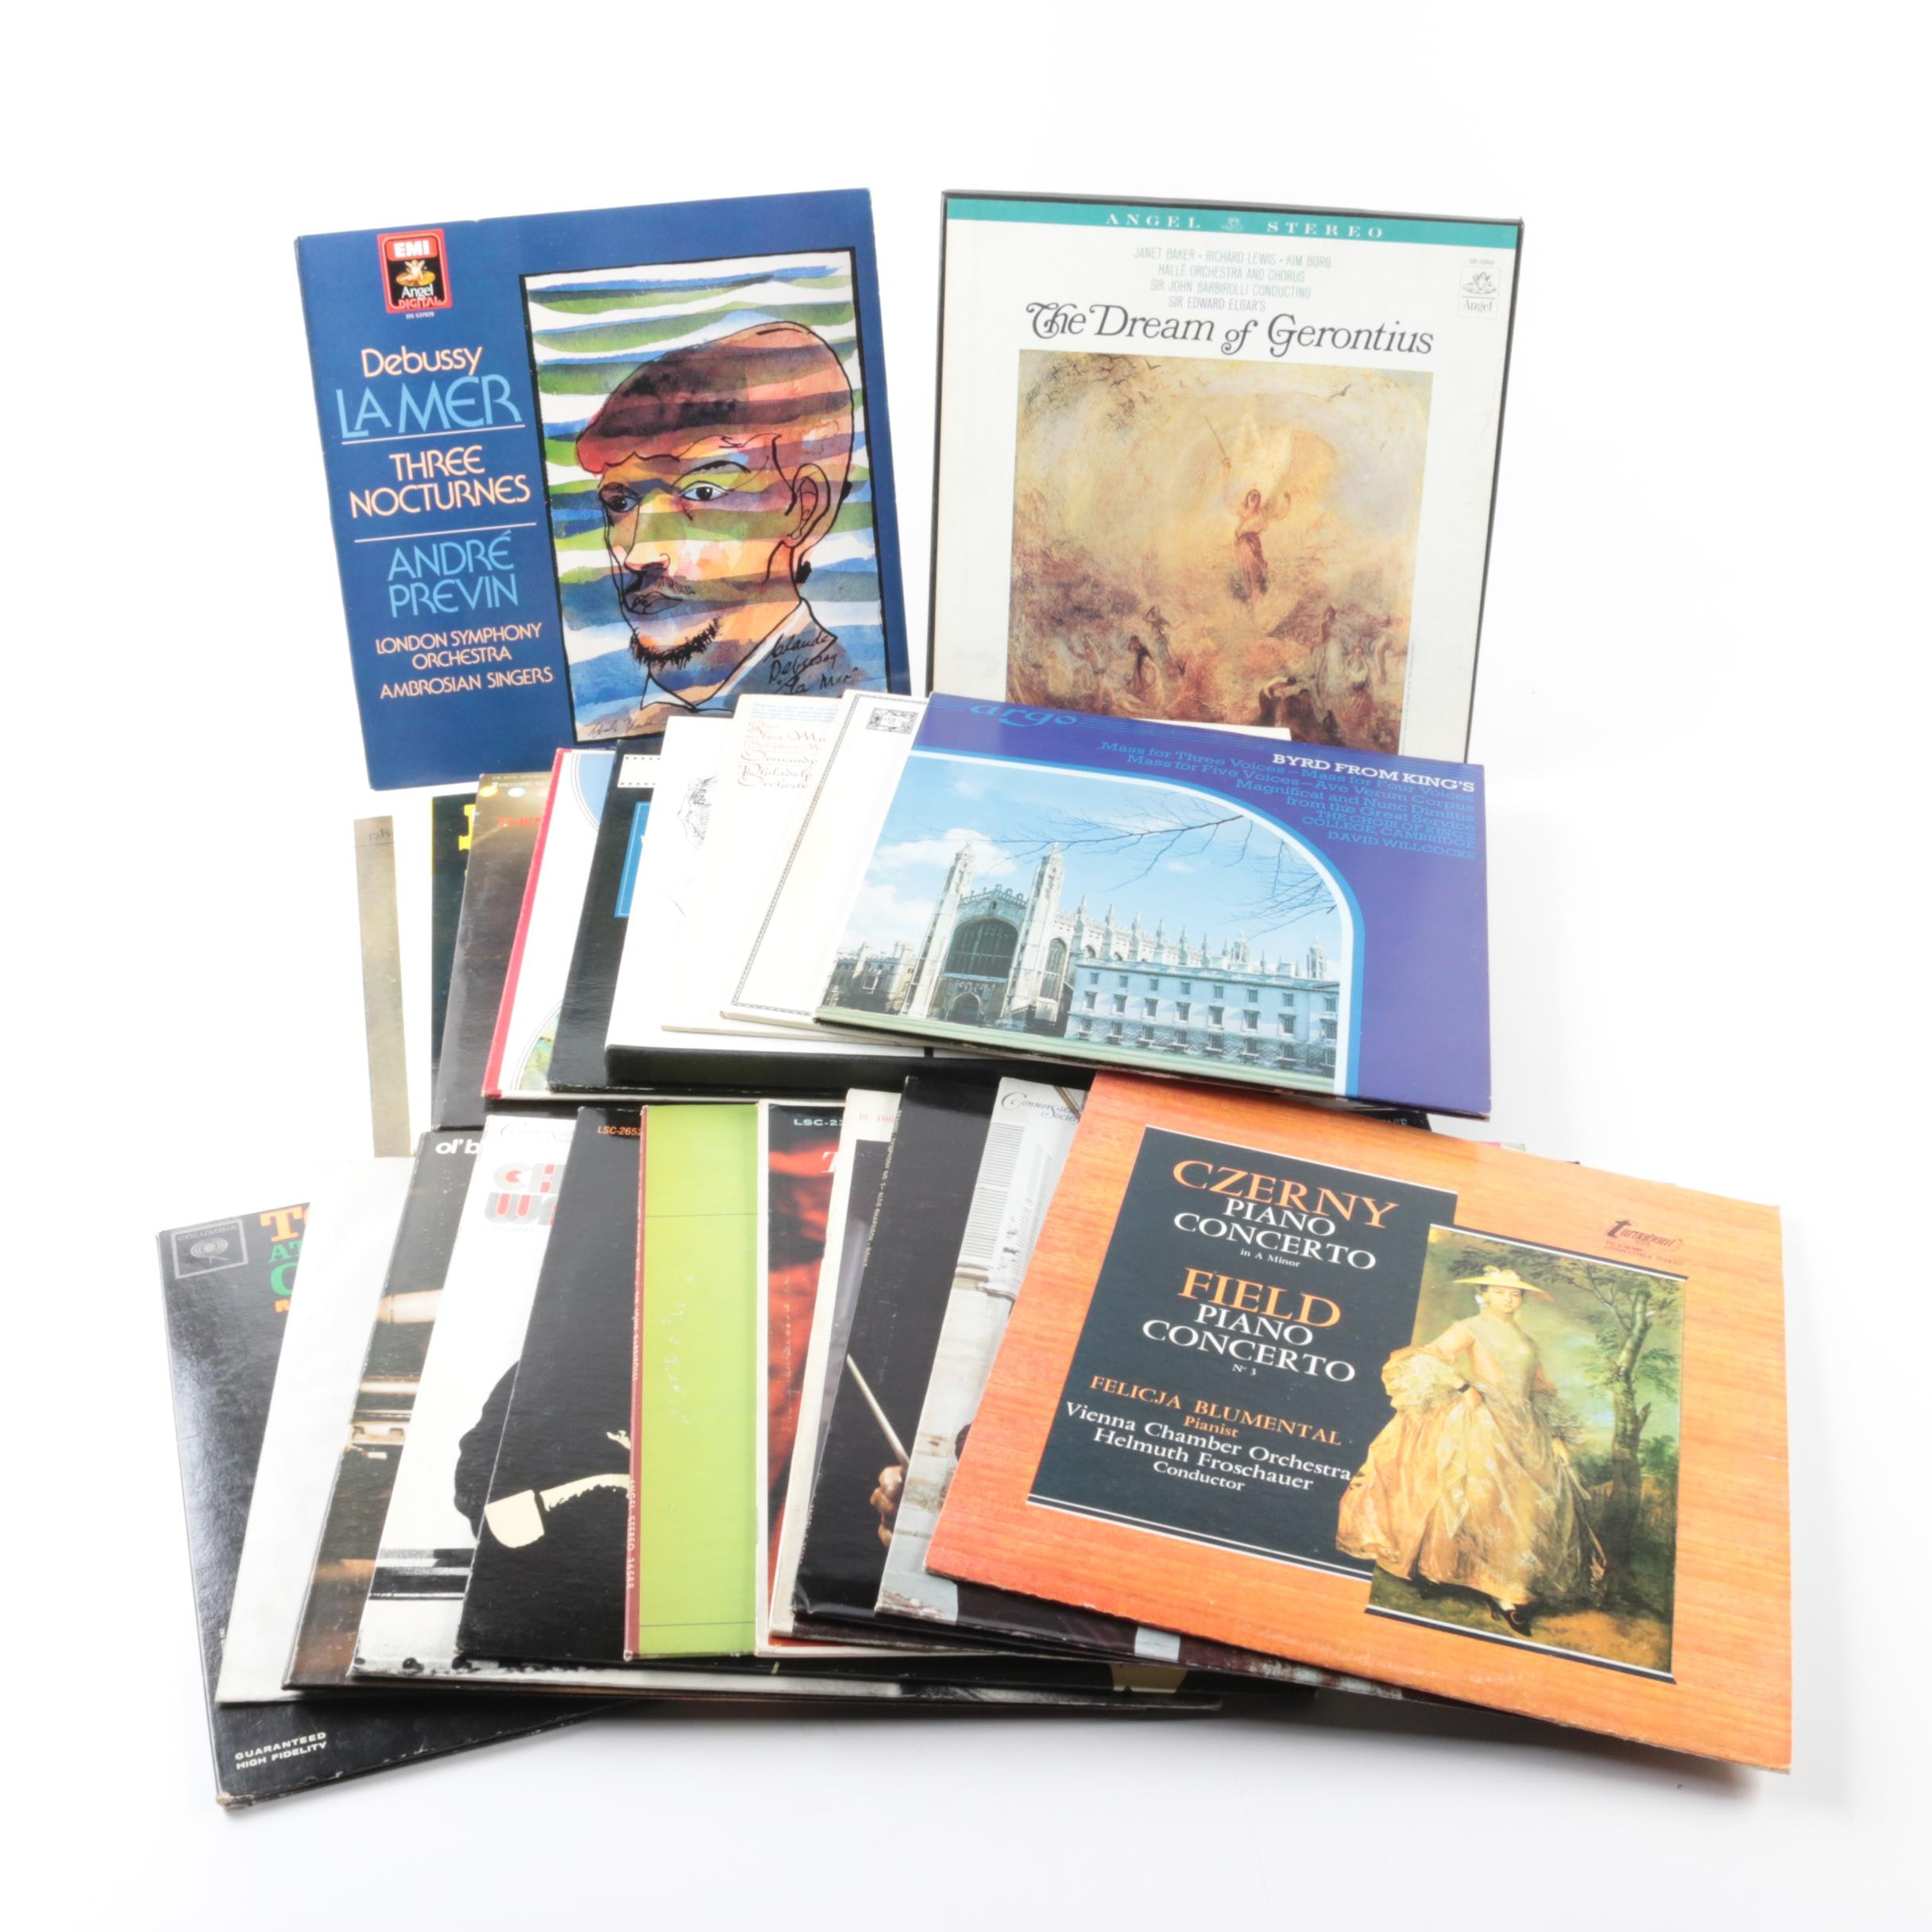 Debussy, Dvorak, Elgar, Field, Chopin and Other Classical LP Records